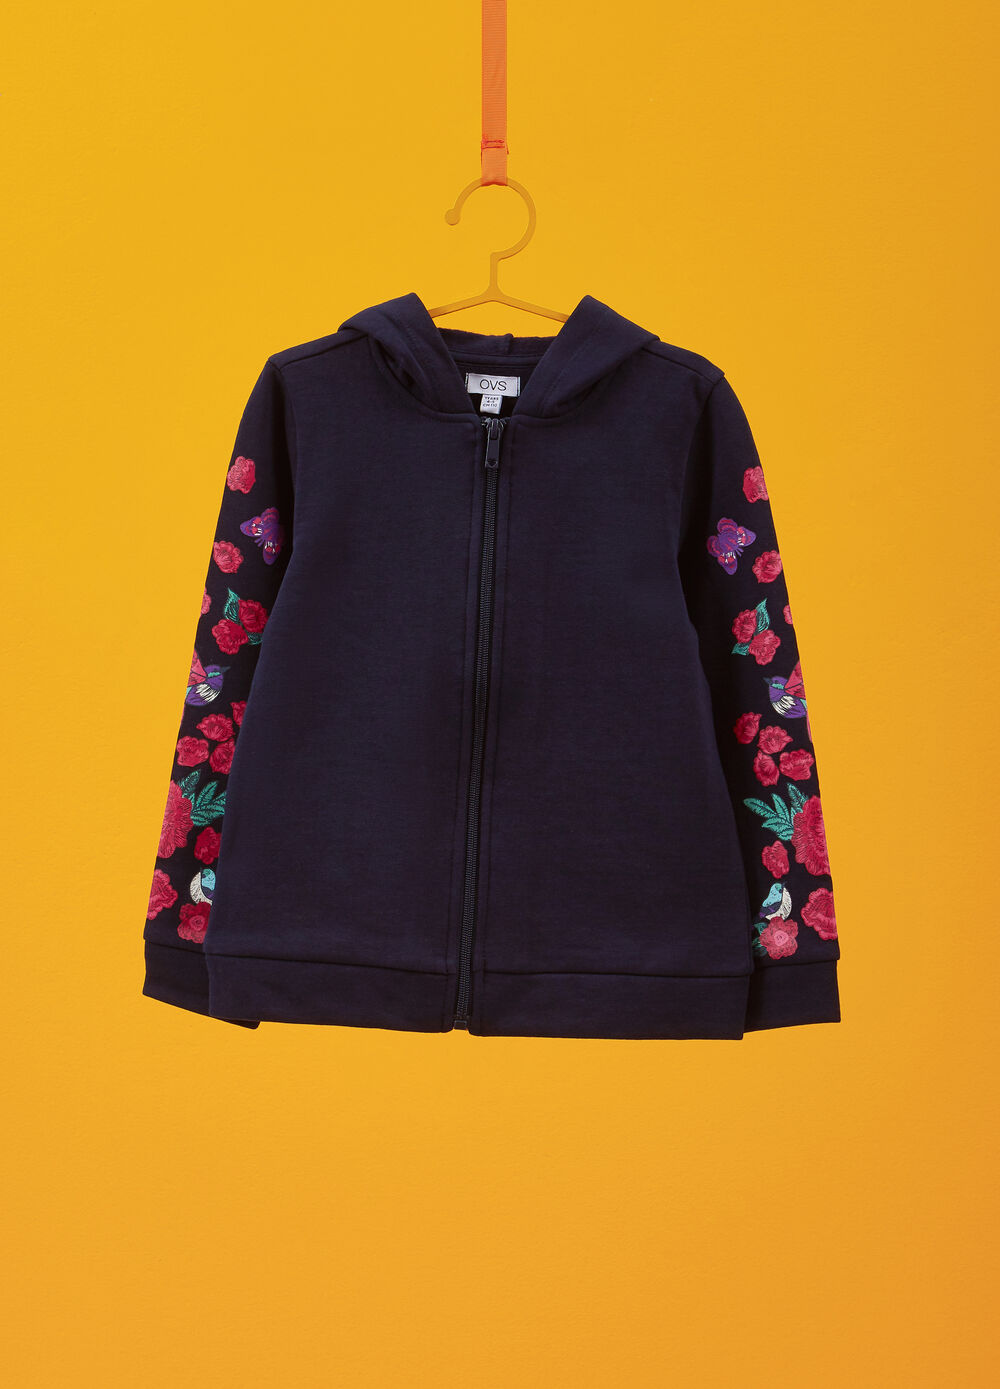 100% cotton sweatshirt with floral patches